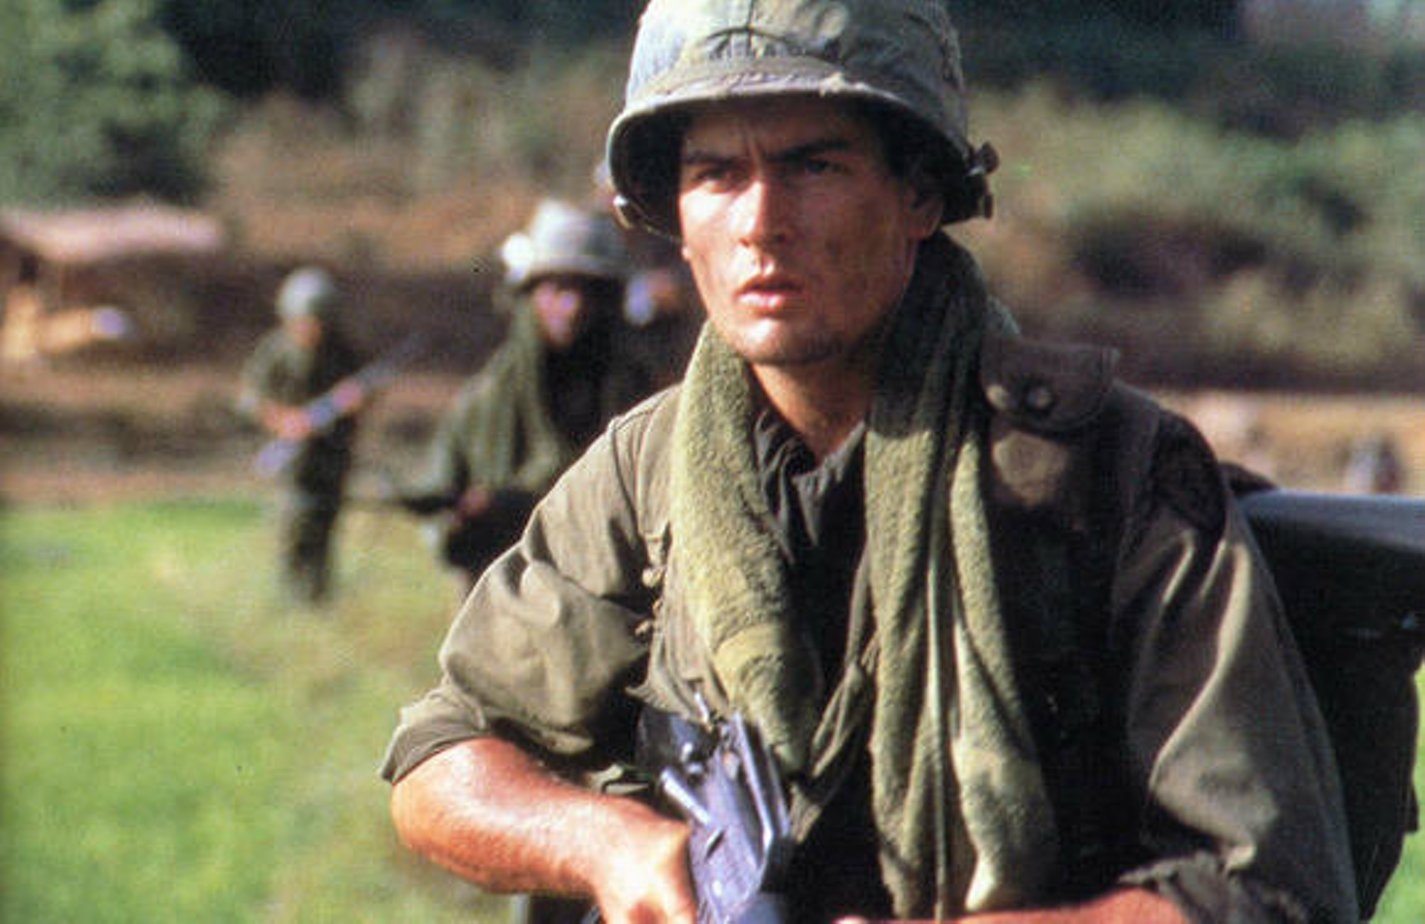 a review of platoon an american war film Platoon was shot in the philippines, which had the advantage of looking a lot like vietnam without actually being in vietnam there was just one discrepancy: the philippines lacked the red soil that stone remembered from his days in 'nam so dirt of the proper hue was trucked in for authenticity's sake.